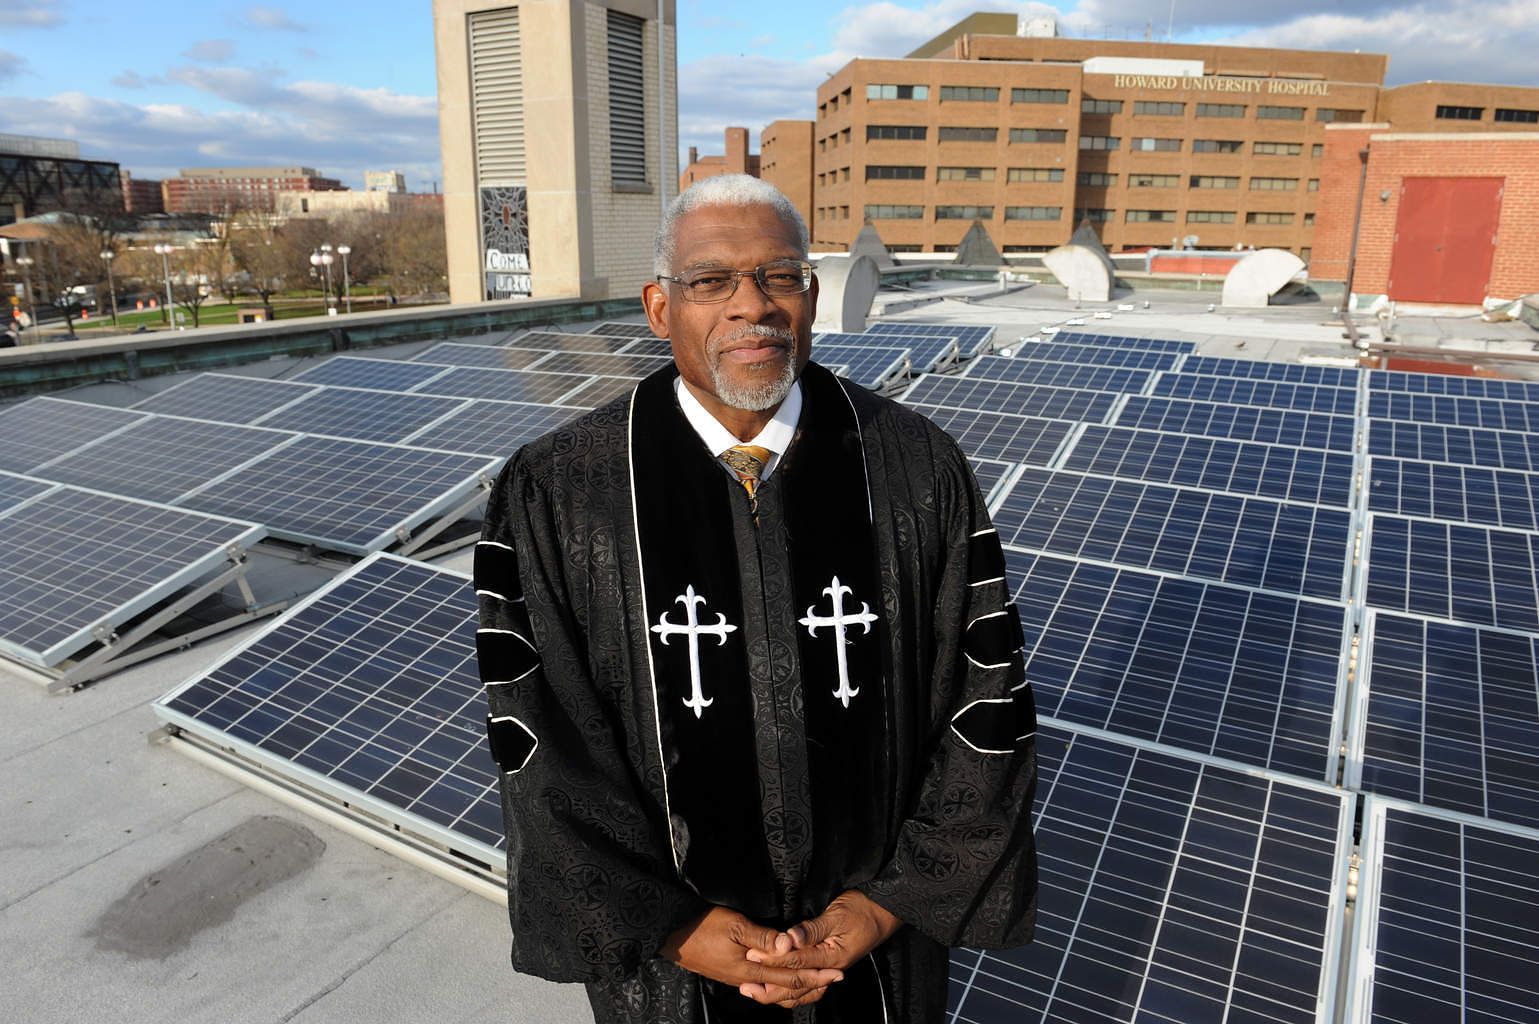 Washington, DC, USA--Rev. Dr. Earl D. Trent Jr., Senior Pastor at Florida Avenue Baptist Church stands among the solor panels that are on top of the church roof.  Jocelyn Augustino/Urban News Service